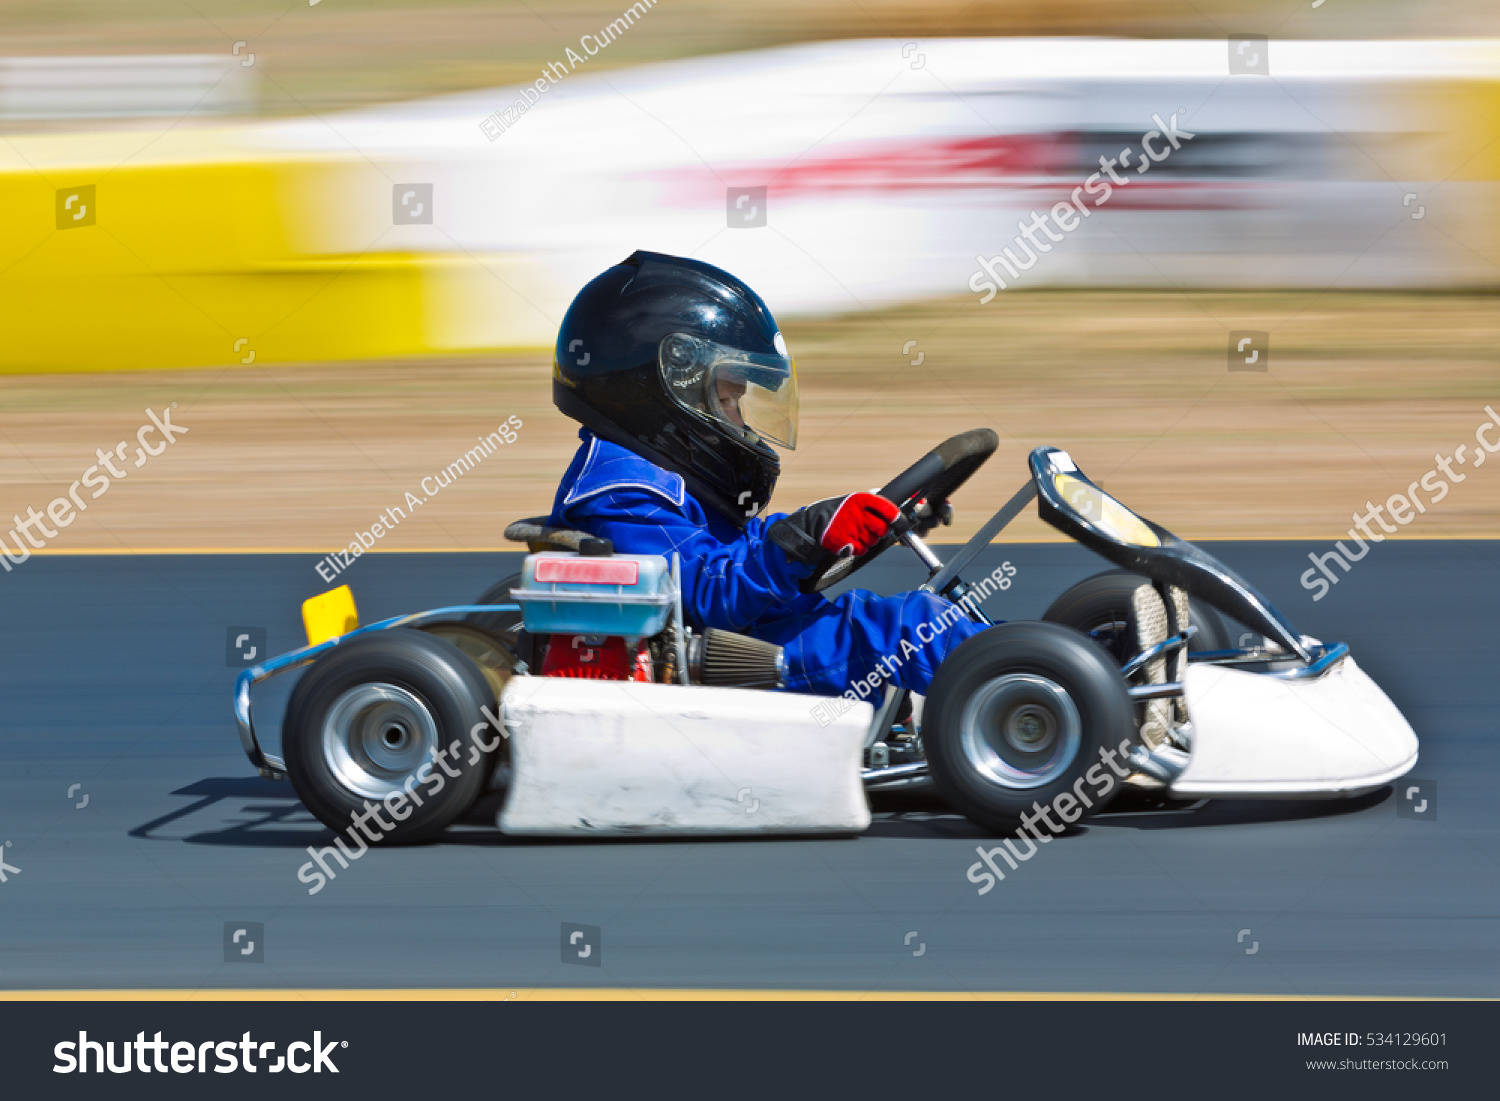 Young Kid Racing Go Cart Around Stock Photo 534129601 - Shutterstock